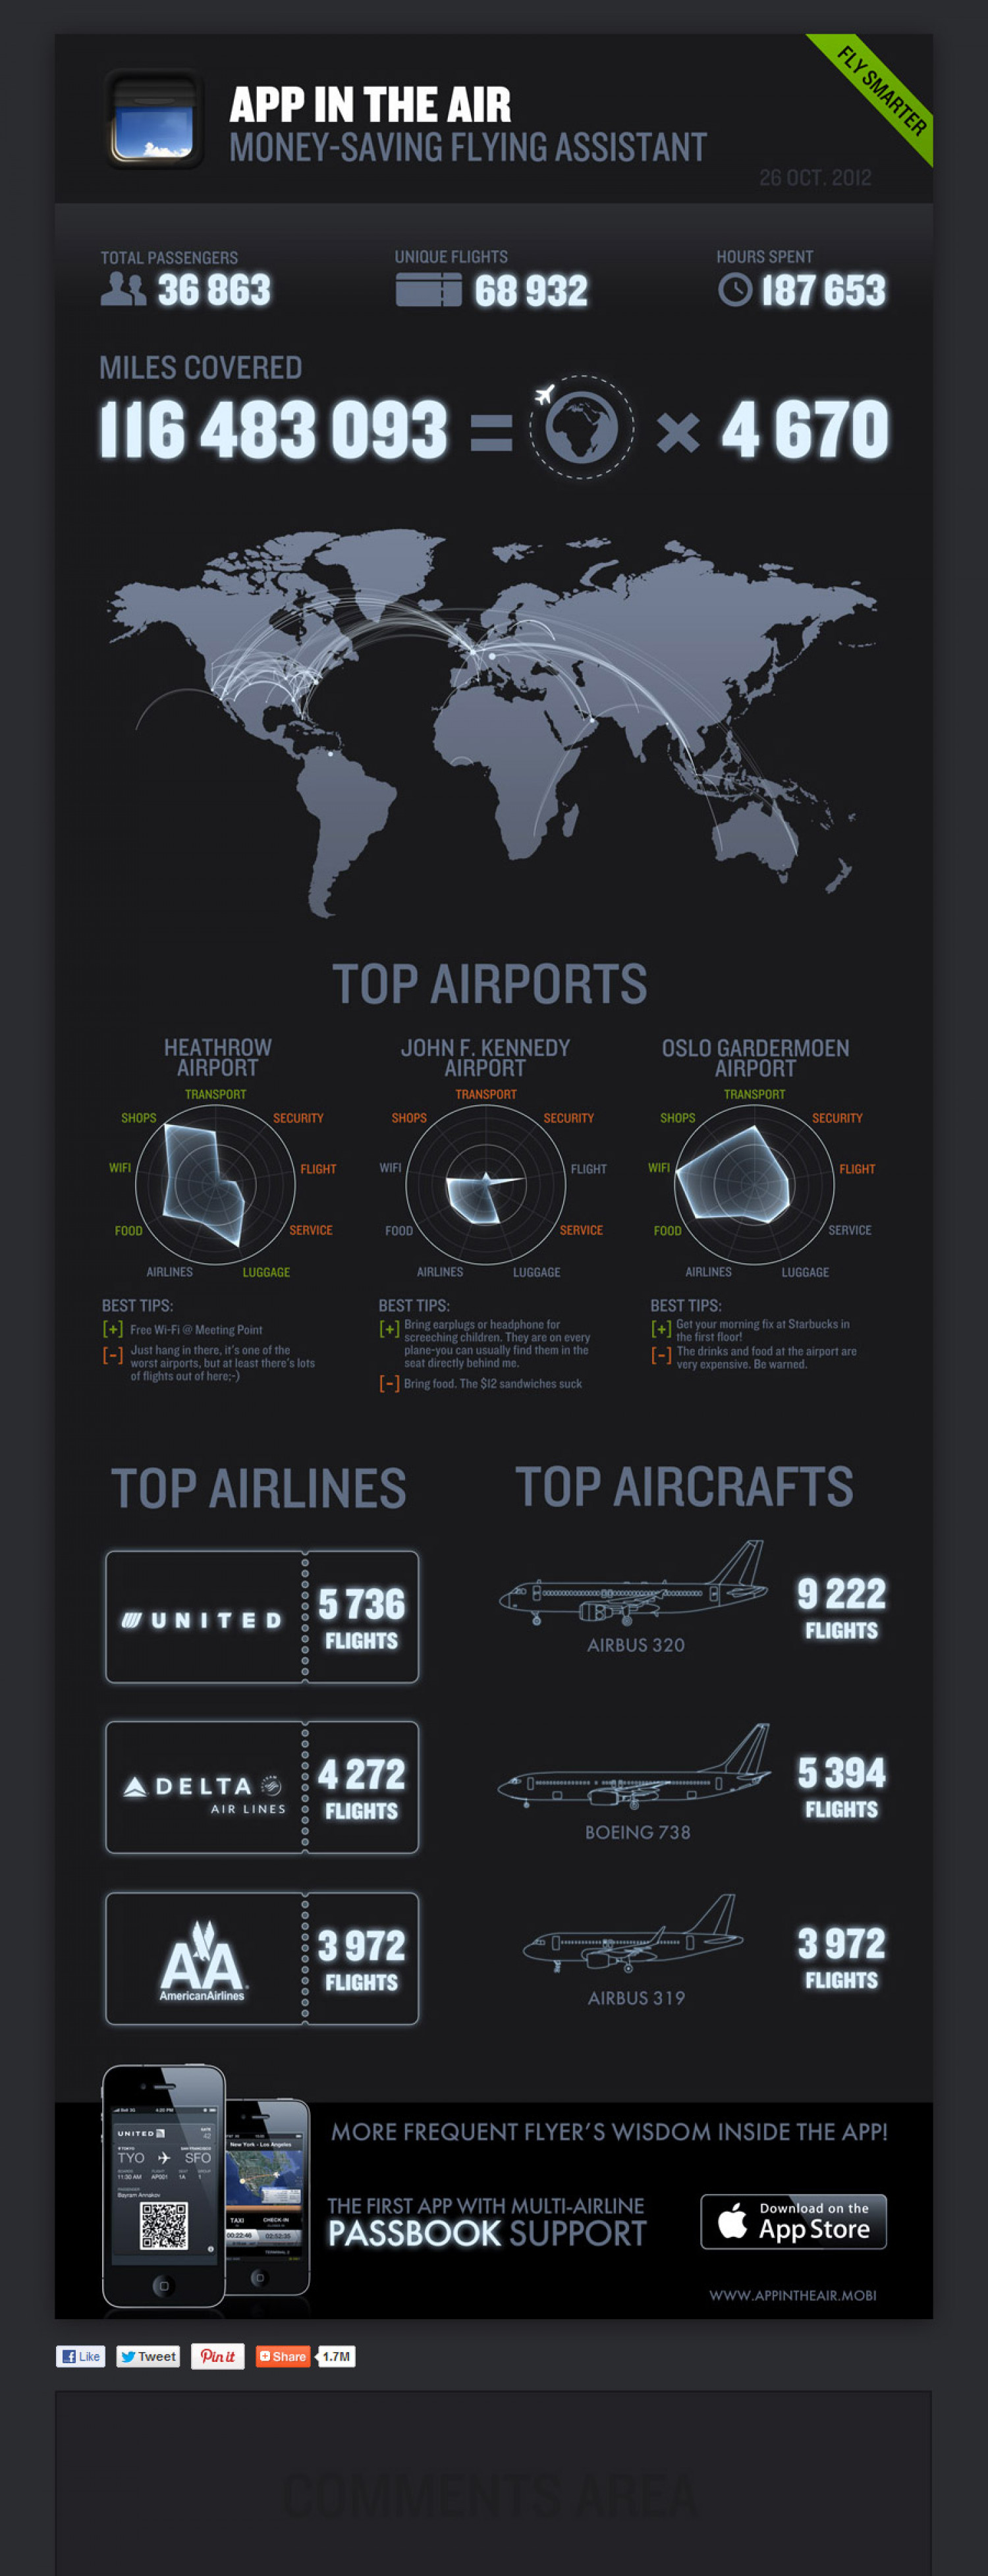 App in the Air - Top Airport and Airlines Infographic